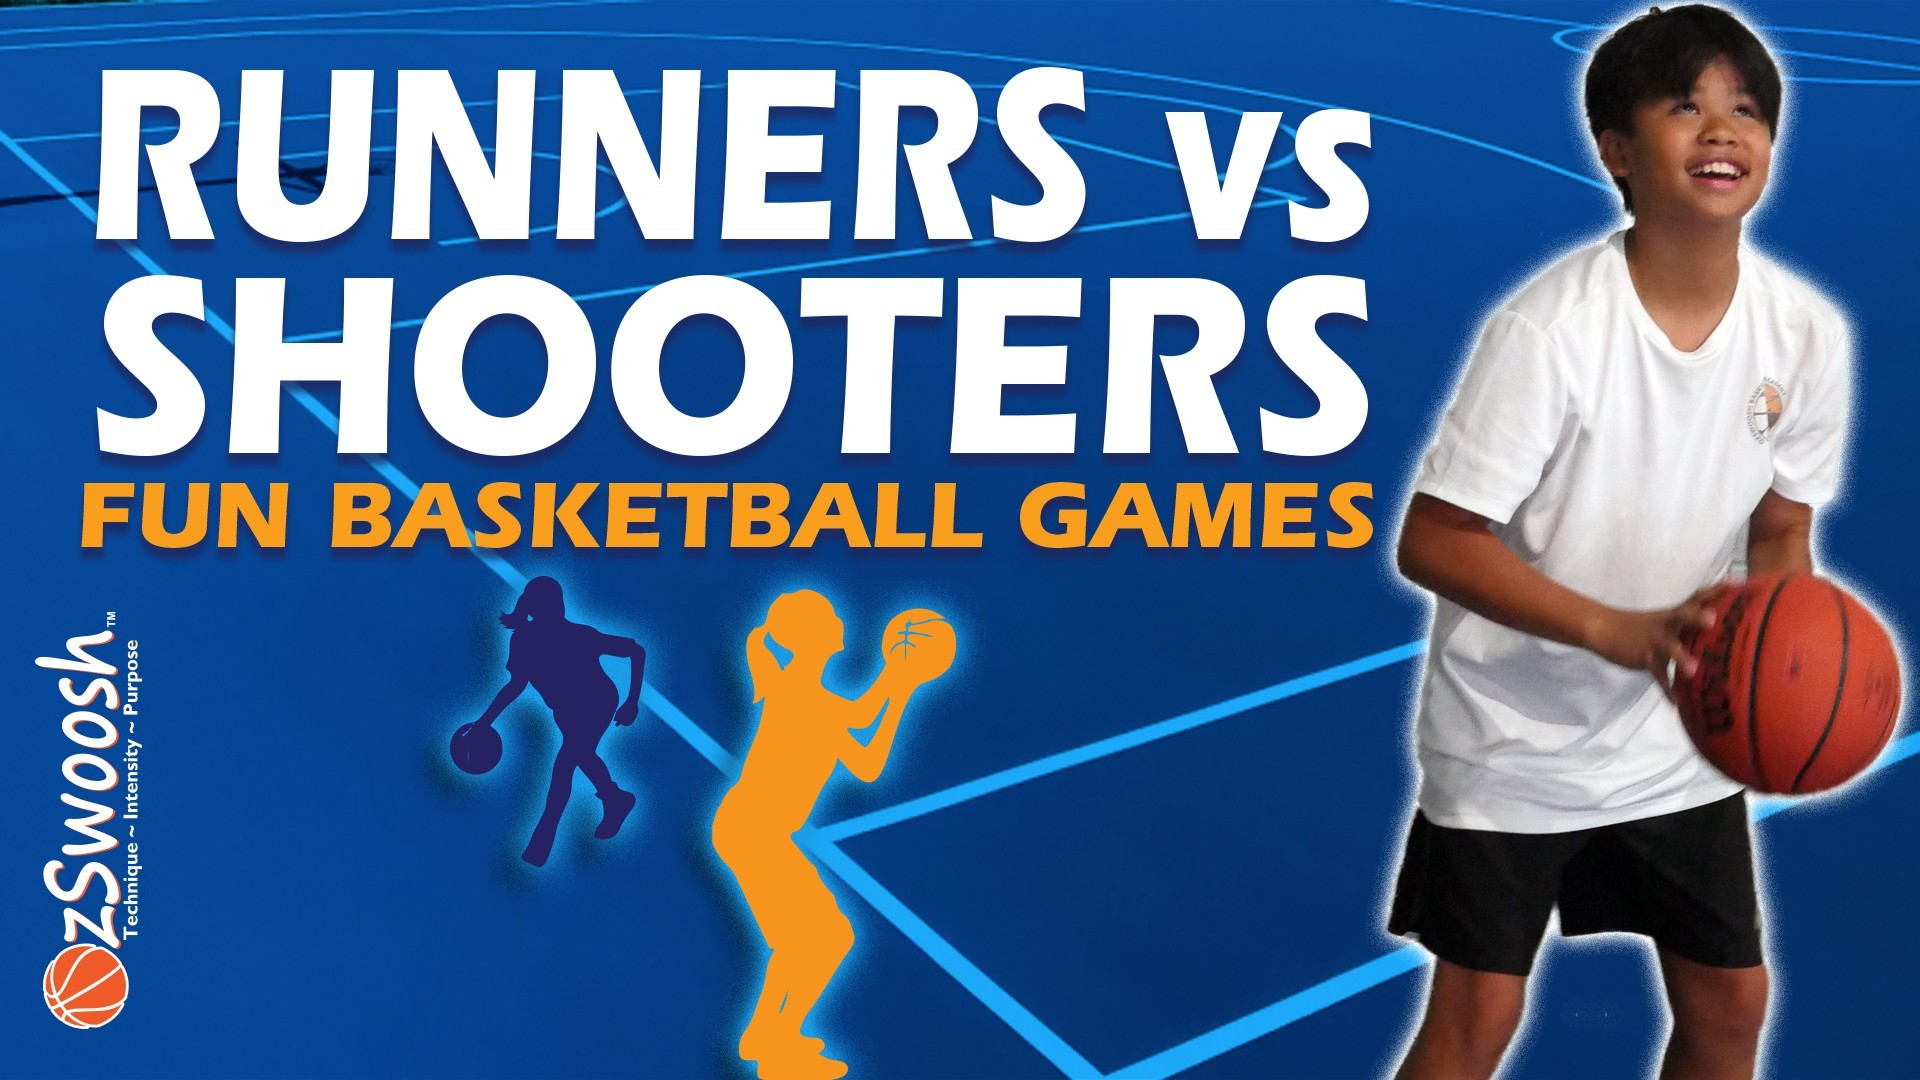 Fun Youth Basketball Drills For Kids - Runners vs Shooters (Competitive Game)